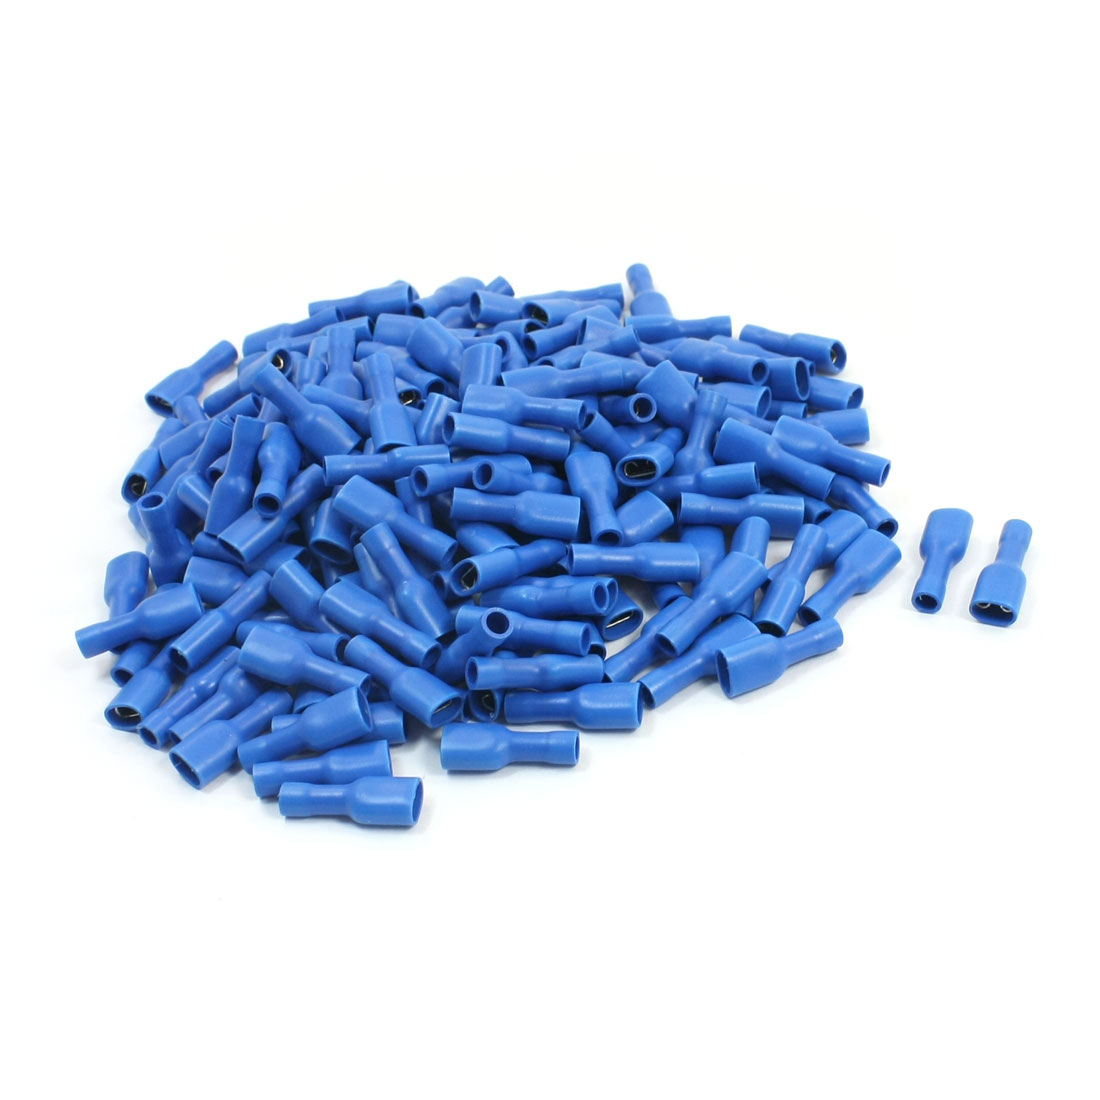 200Pcs FDFD2-250 16-14AWG Wire Blue Plastic Coated Spade Crimped Connector Push-On Insulated Terminal